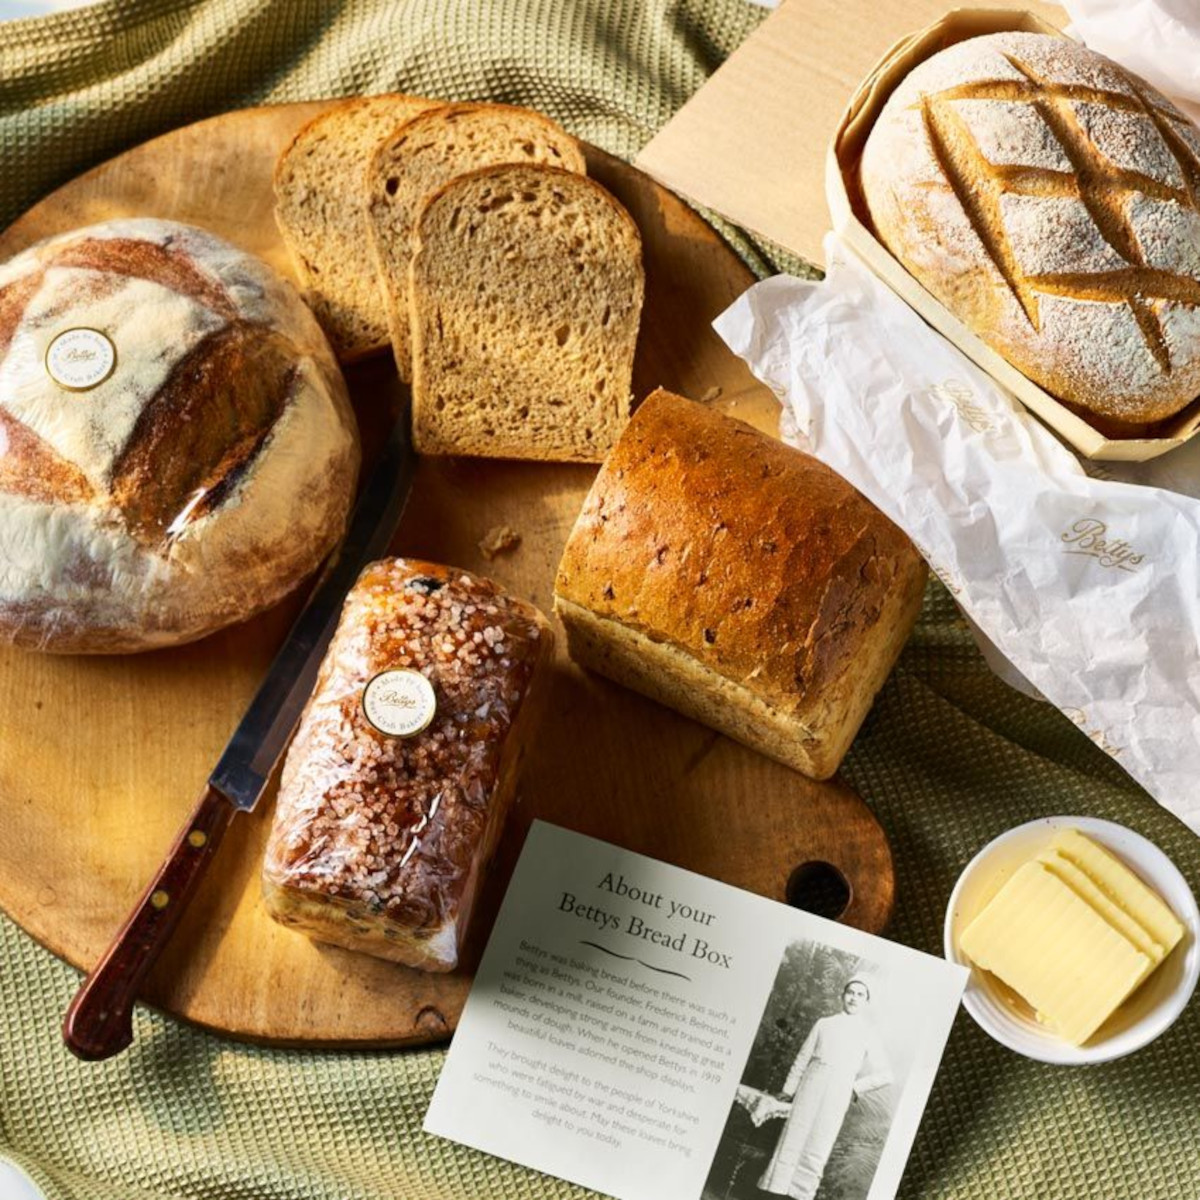 Bread Box from Bettys new home gifts